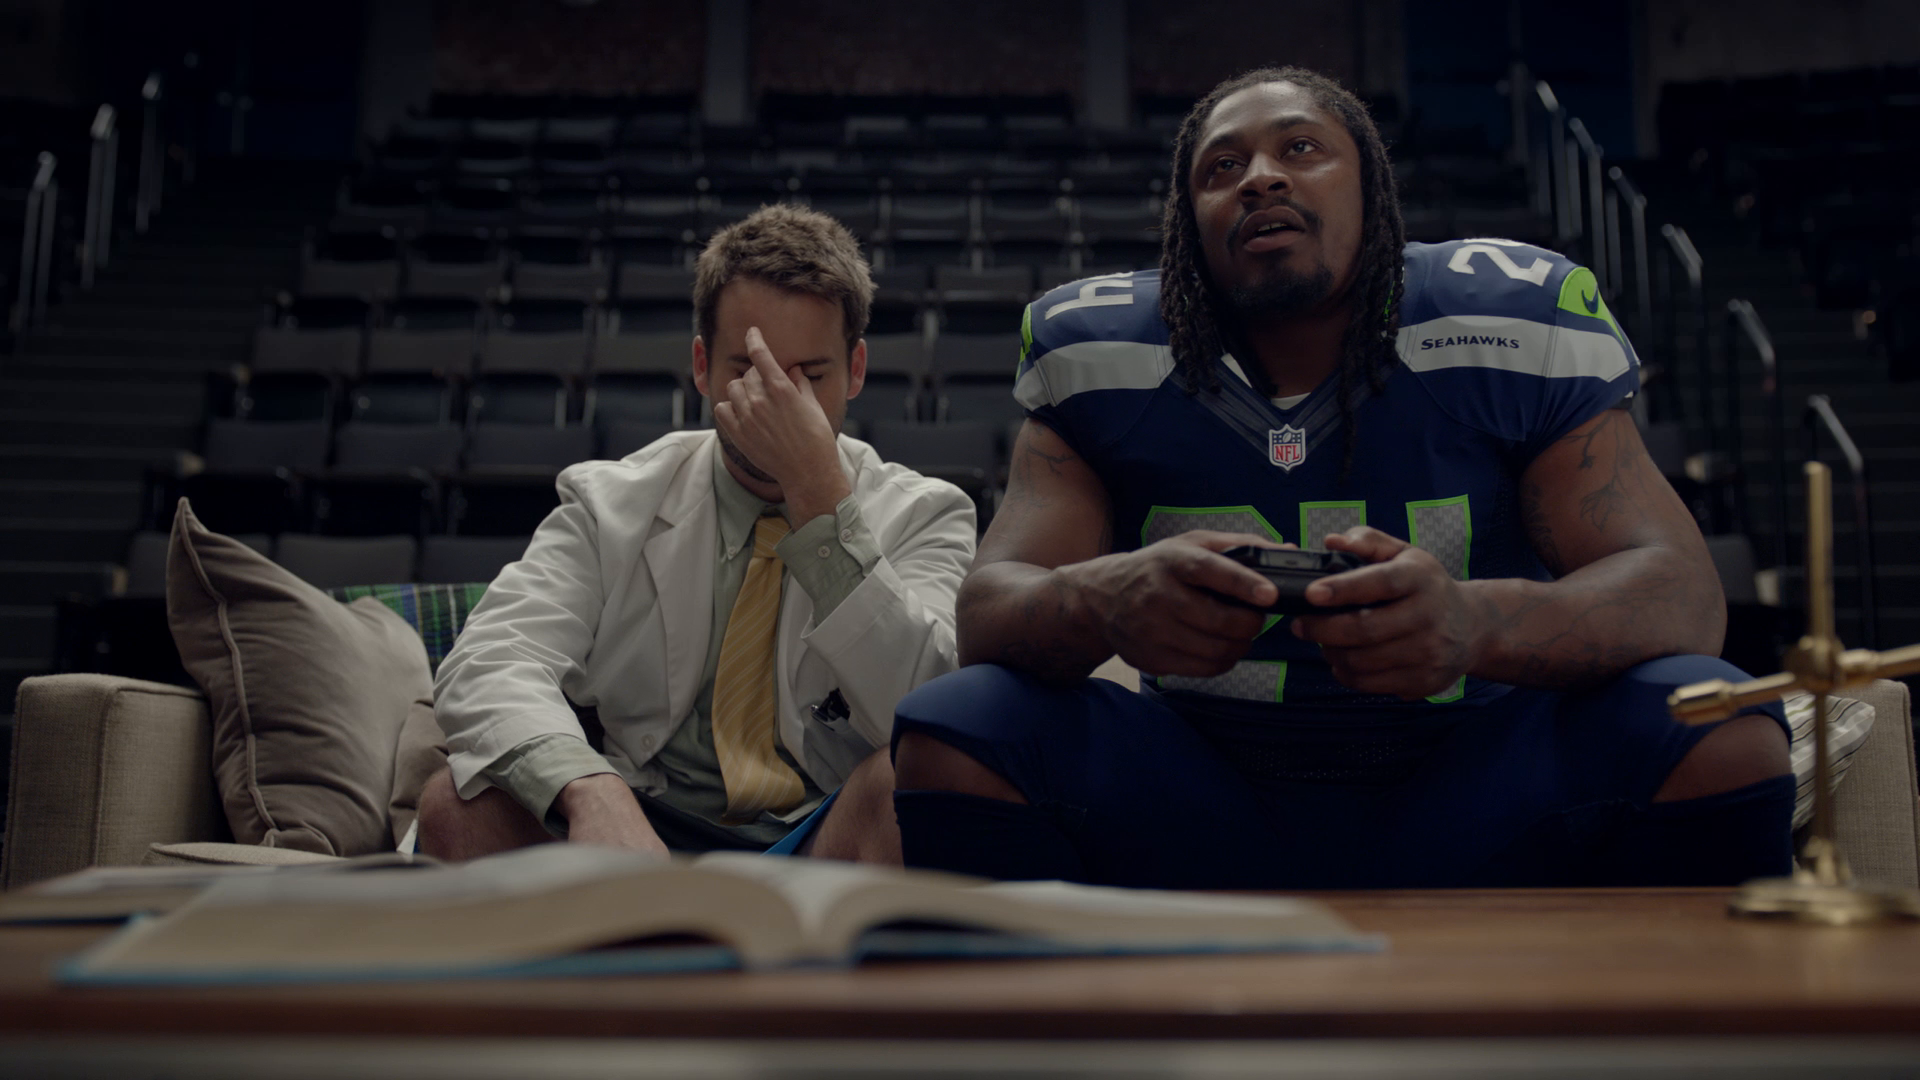 Thumbnail for Detention with Marshawn Lynch